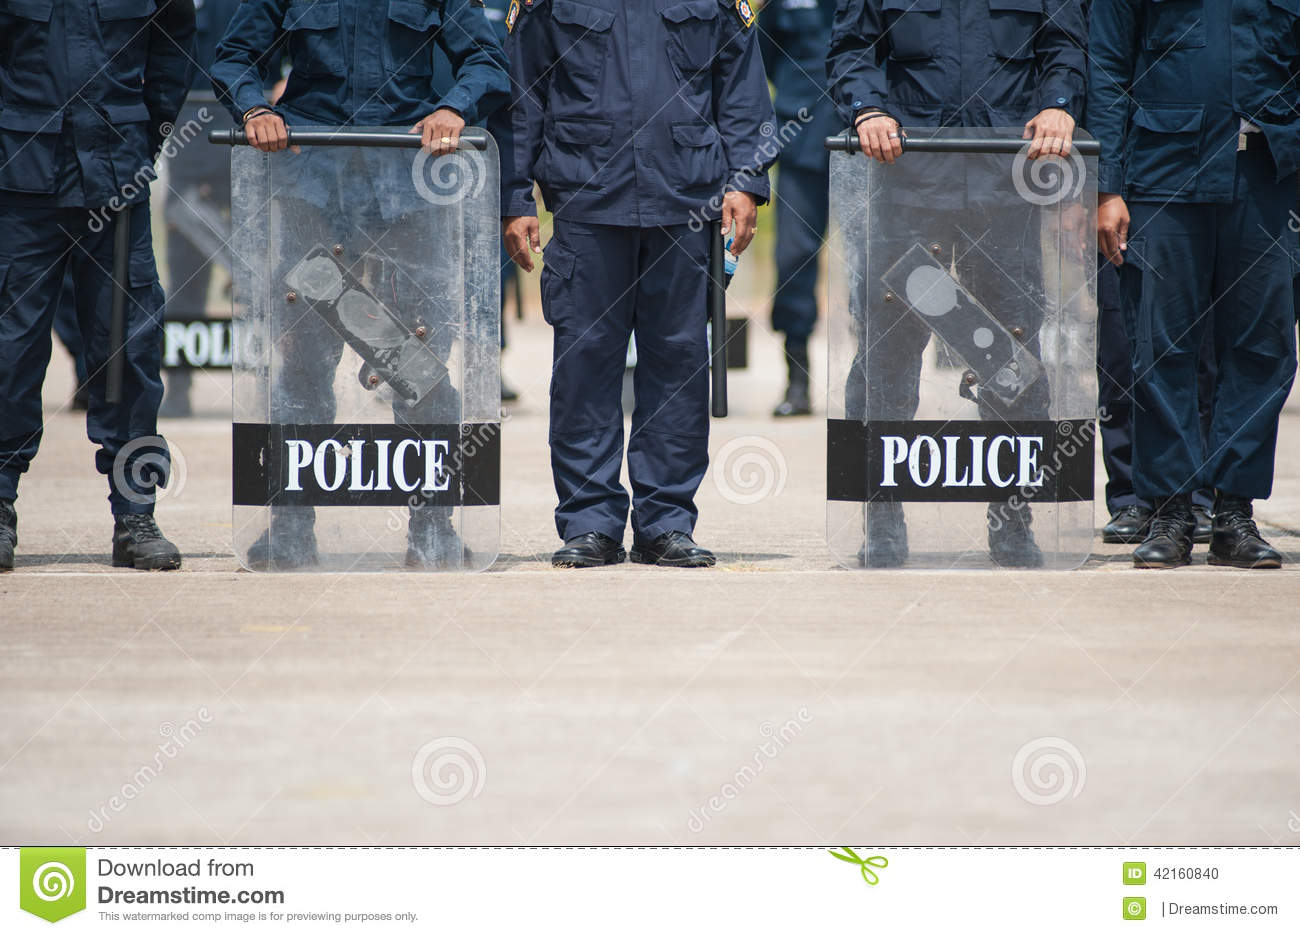 Police officer in a protective